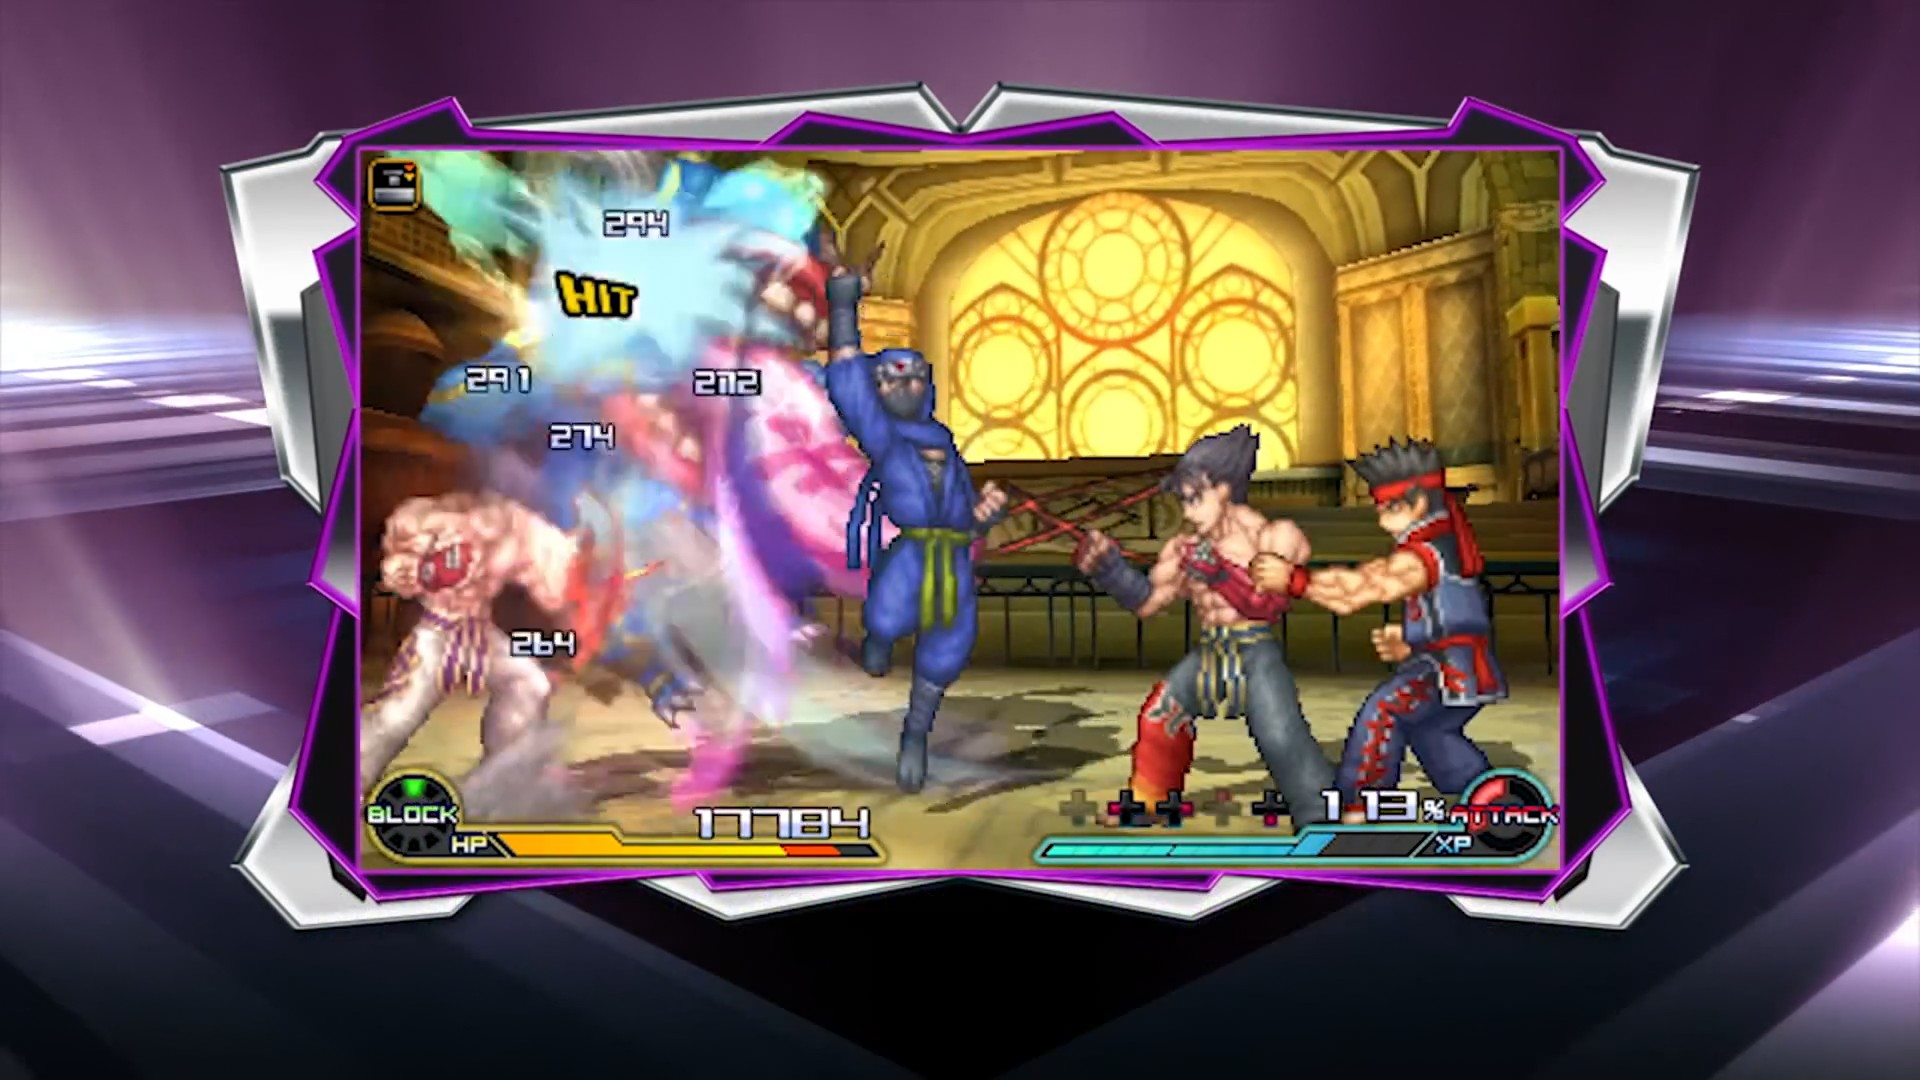 Project X Zone 2 Virtua Fighter Segalization